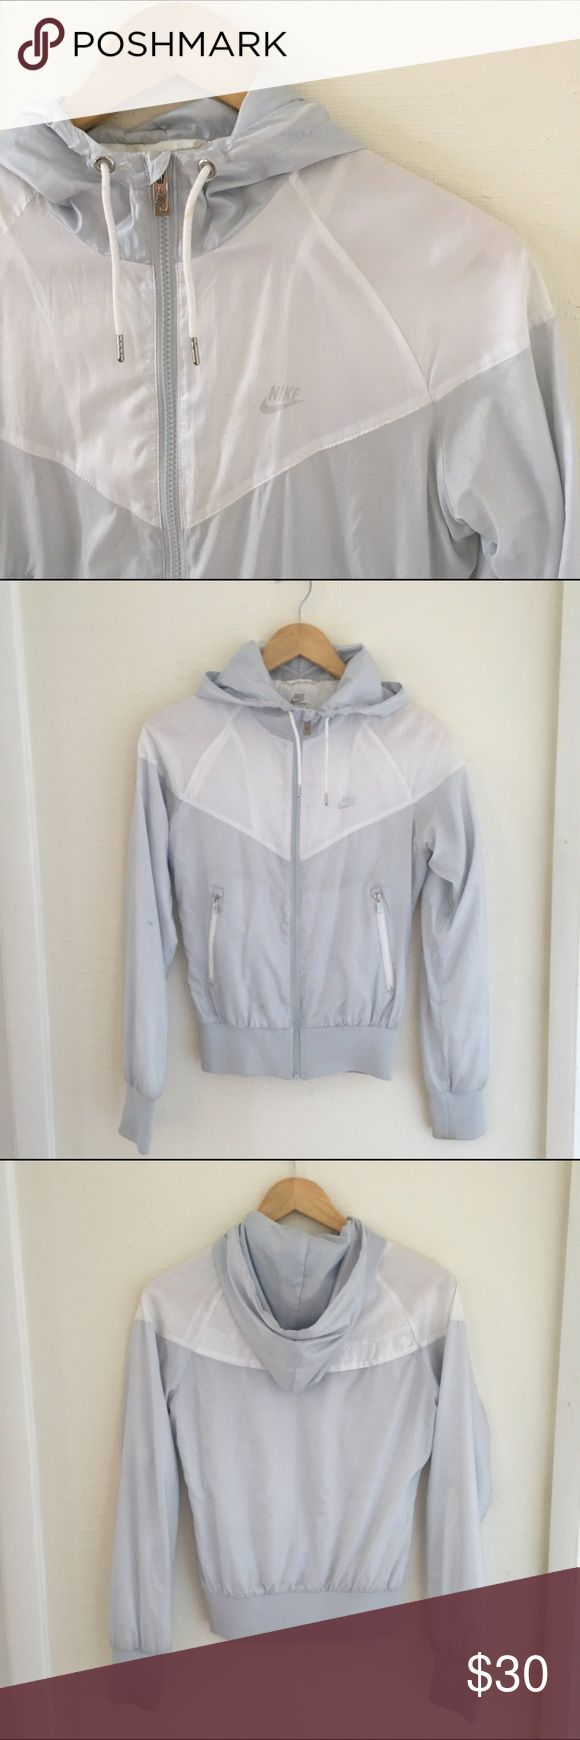 Nike Windbreaker Raincoat Running Jacket Super chic running jacket with mesh interior and windbreaker exterior. Very lightweight. Hooded, zip up, snug fit.  A flattering ice blue color. Nike Jackets & Coats